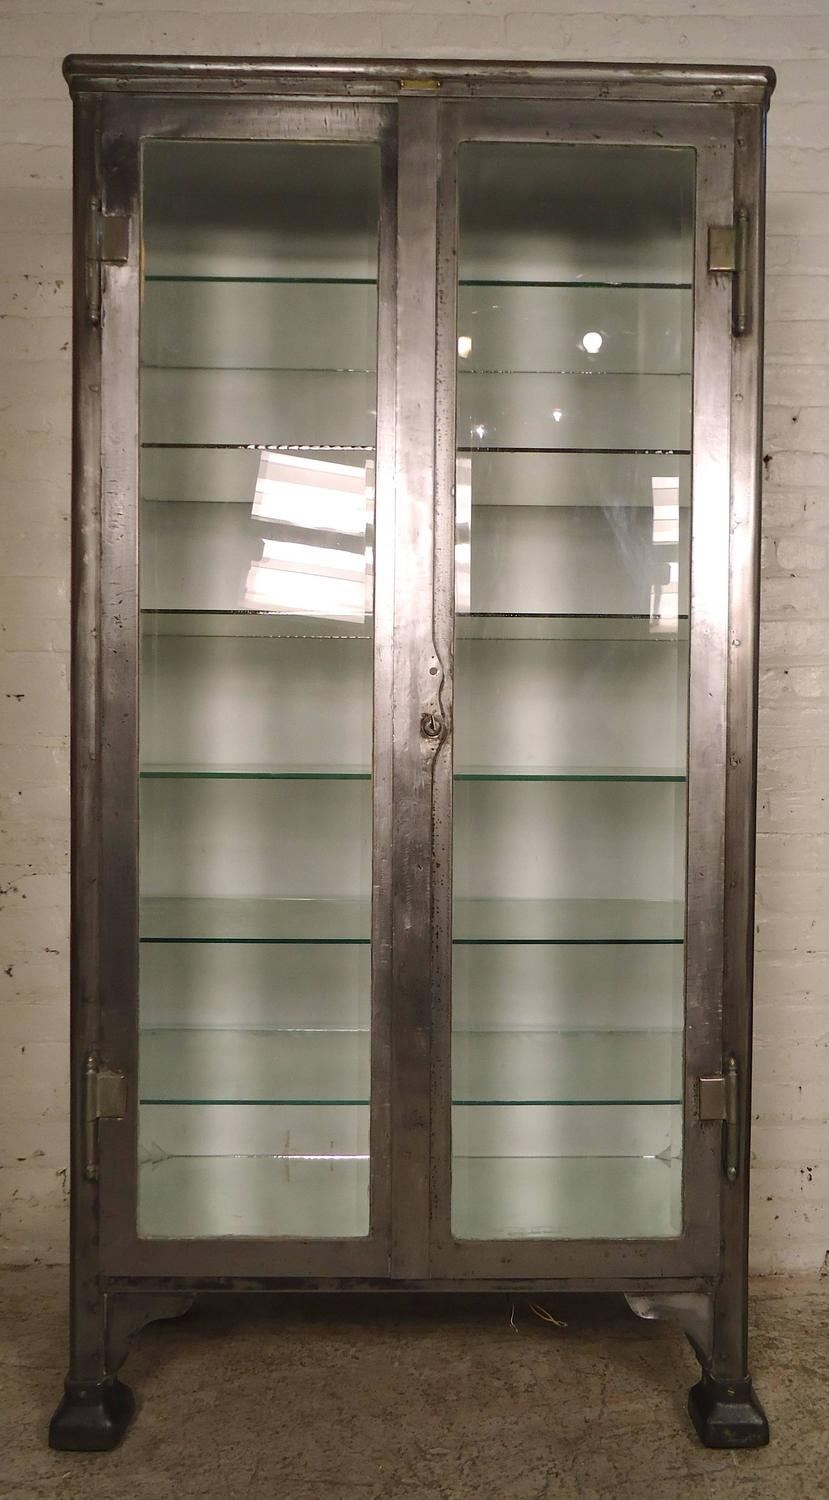 Massive Industrial Metal Display Cabinet For Sale At 1stdibs